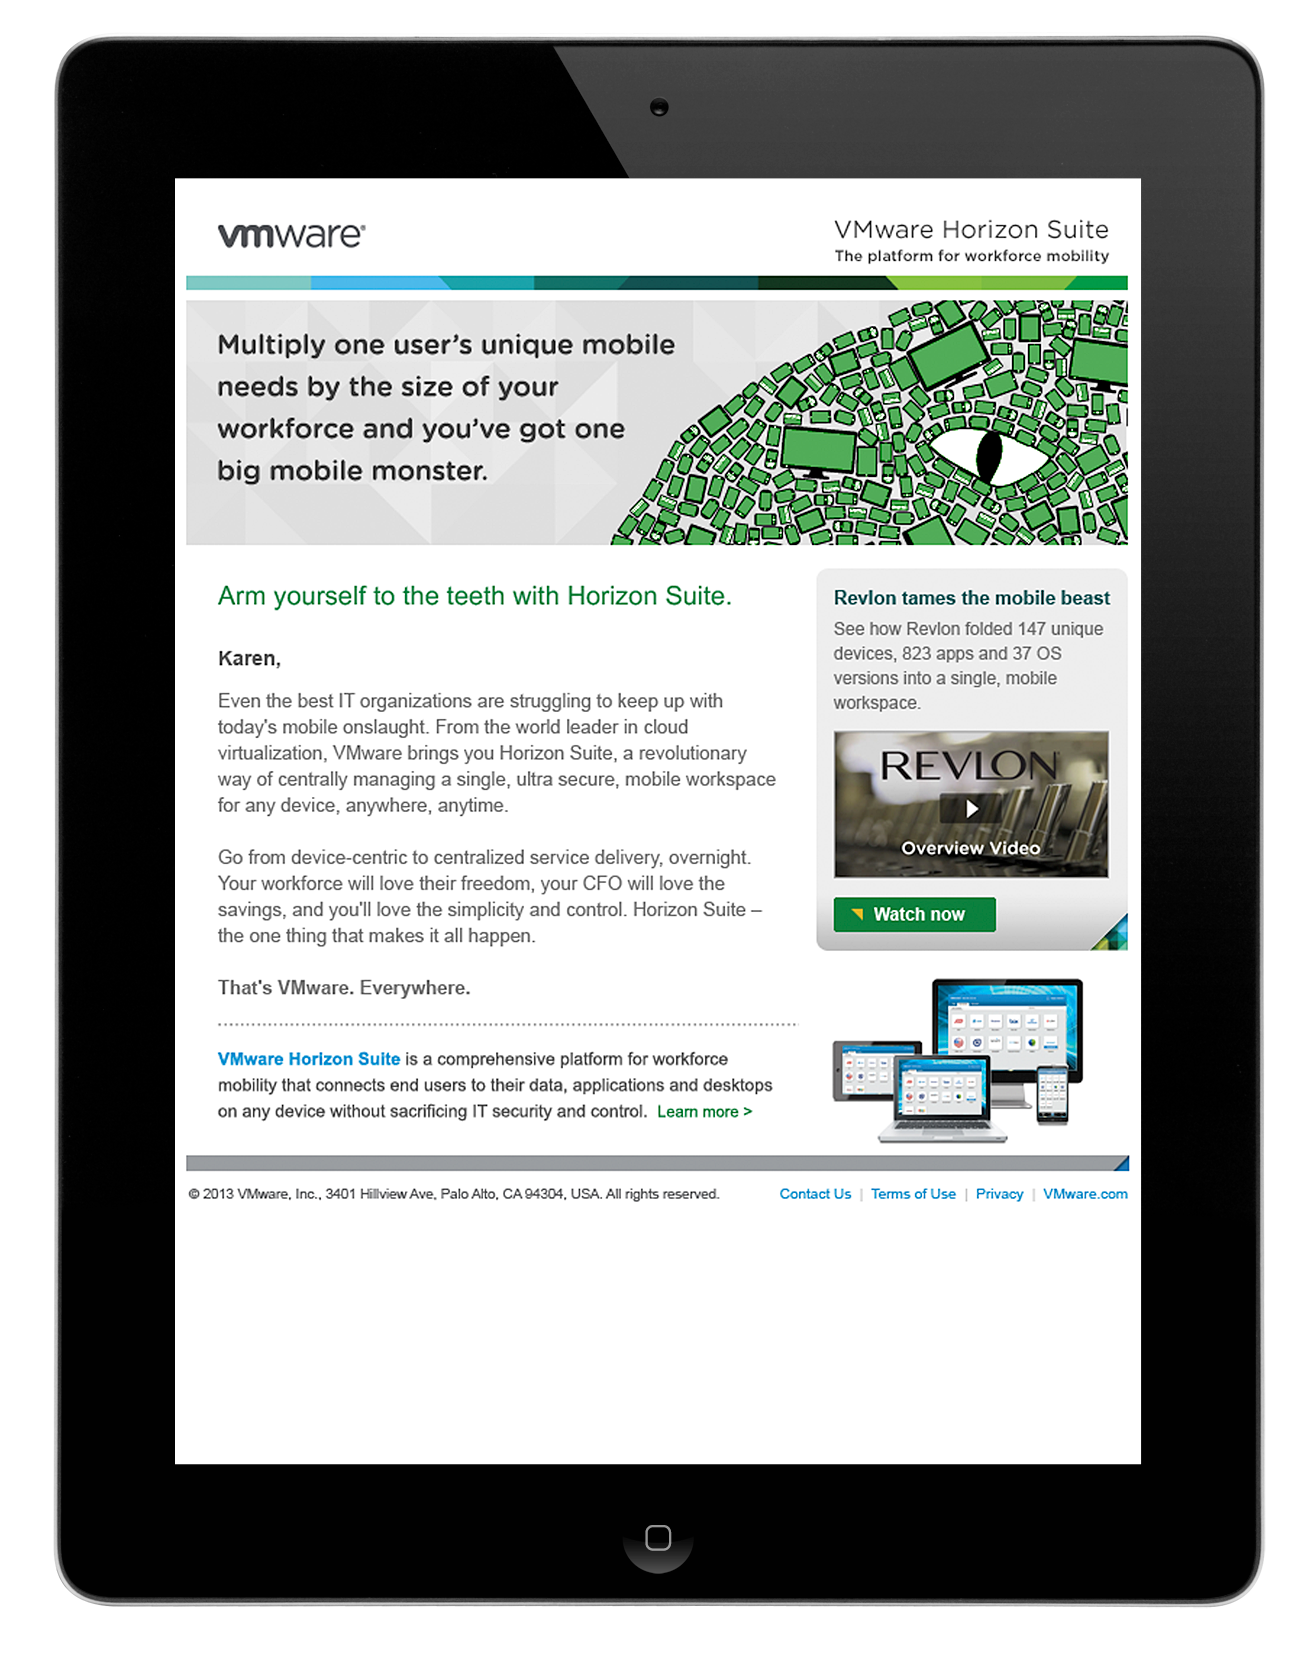 vmware Data Monster Campaign